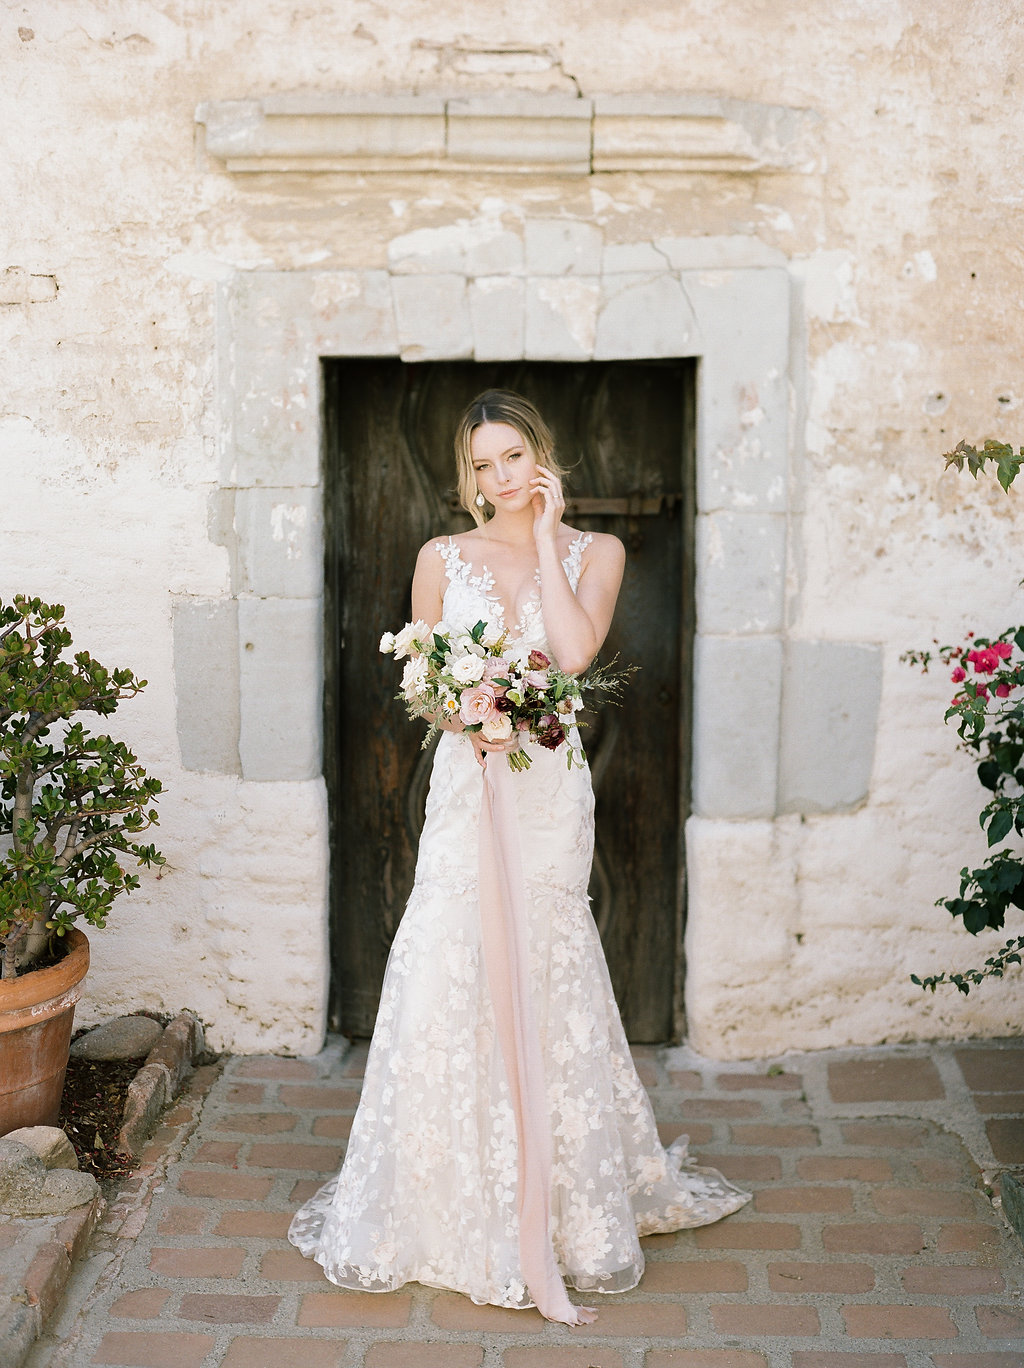 Spanish Mission Style Wedding Ideas Bridal Bouquet Summer Flowers Finding Flora Wedding Sparrow Fine Art Claire Pettibone